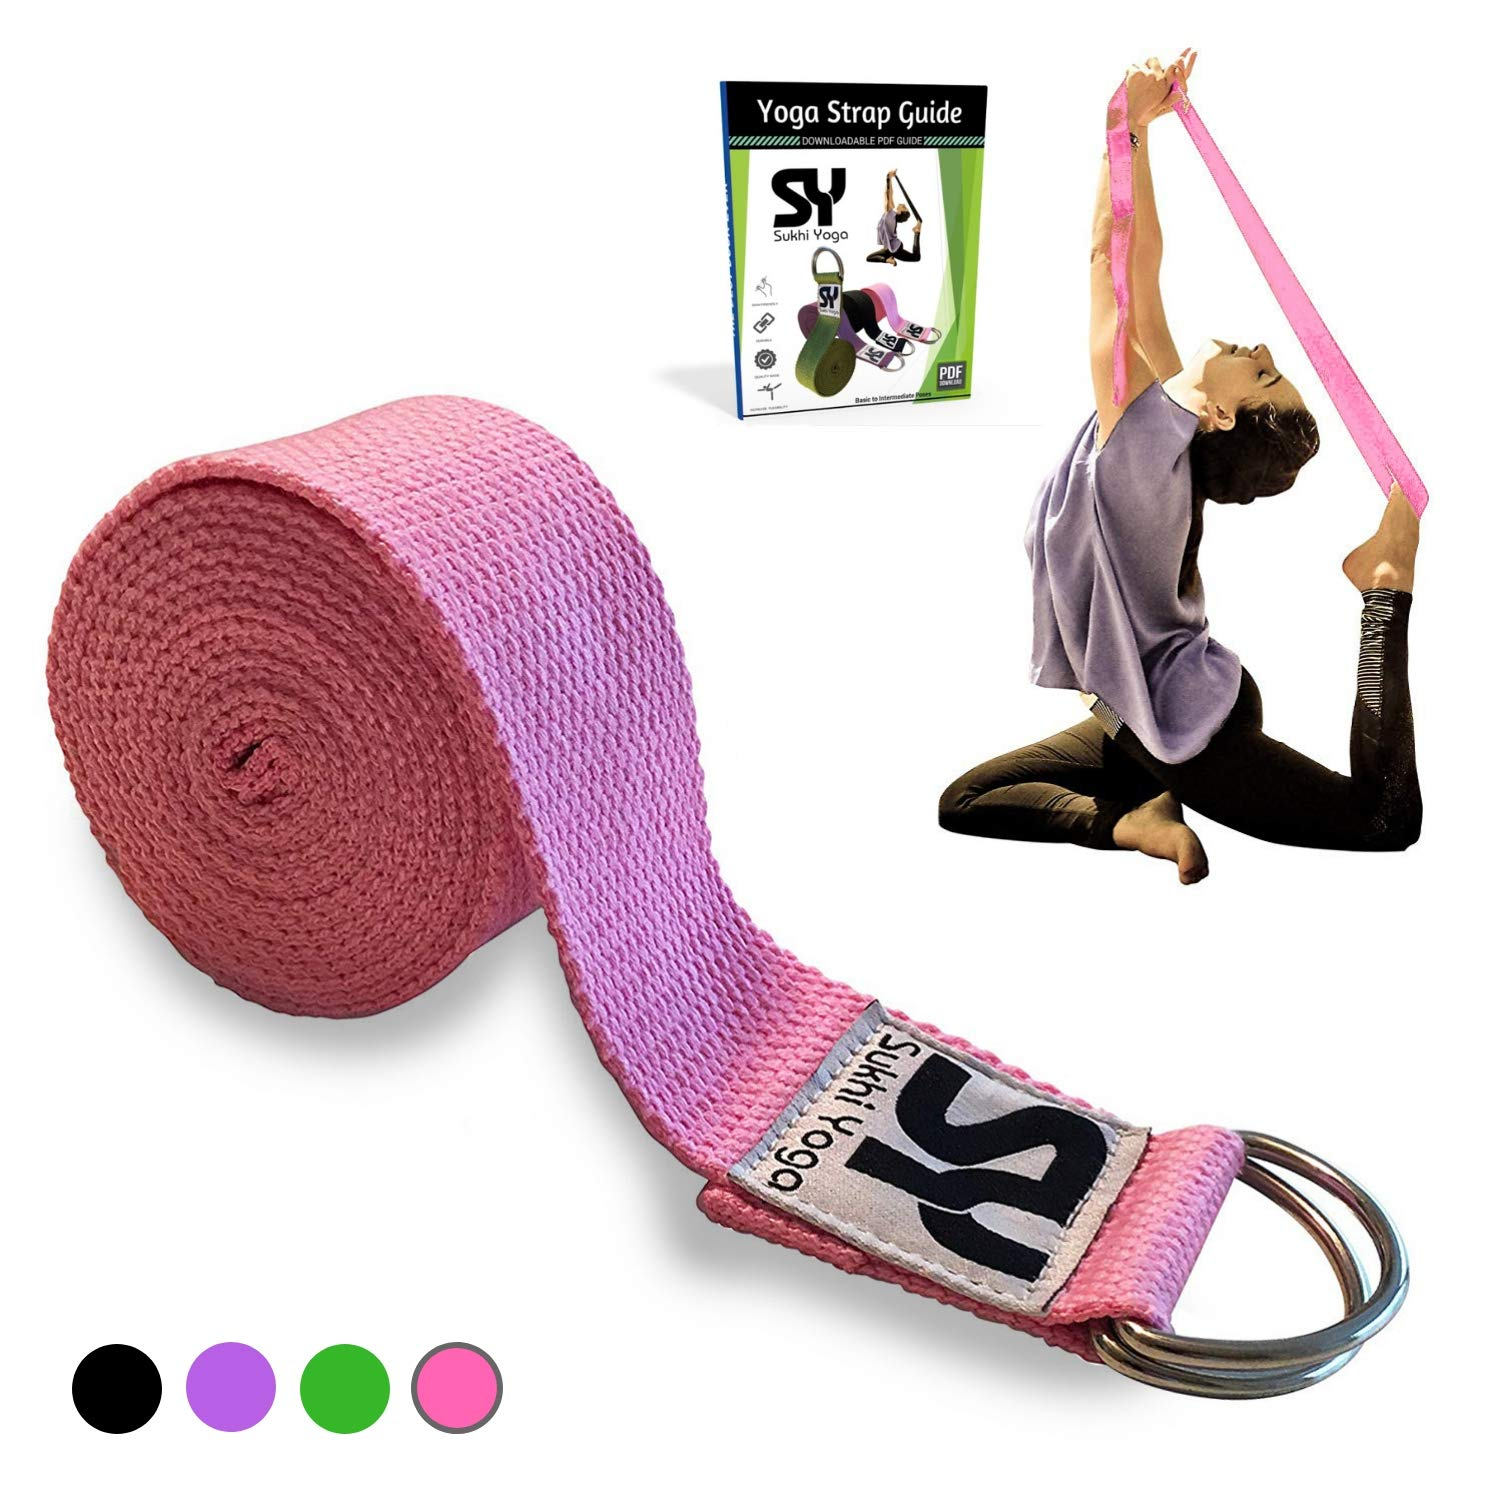 Yoga Fitness & Body Building Bright Hot Yoga Stretch Strap D-ring Training Belt Waist Leg Fitness Exercise Gym Products Body Exercise Tool High Quality 4 Colors 6ft